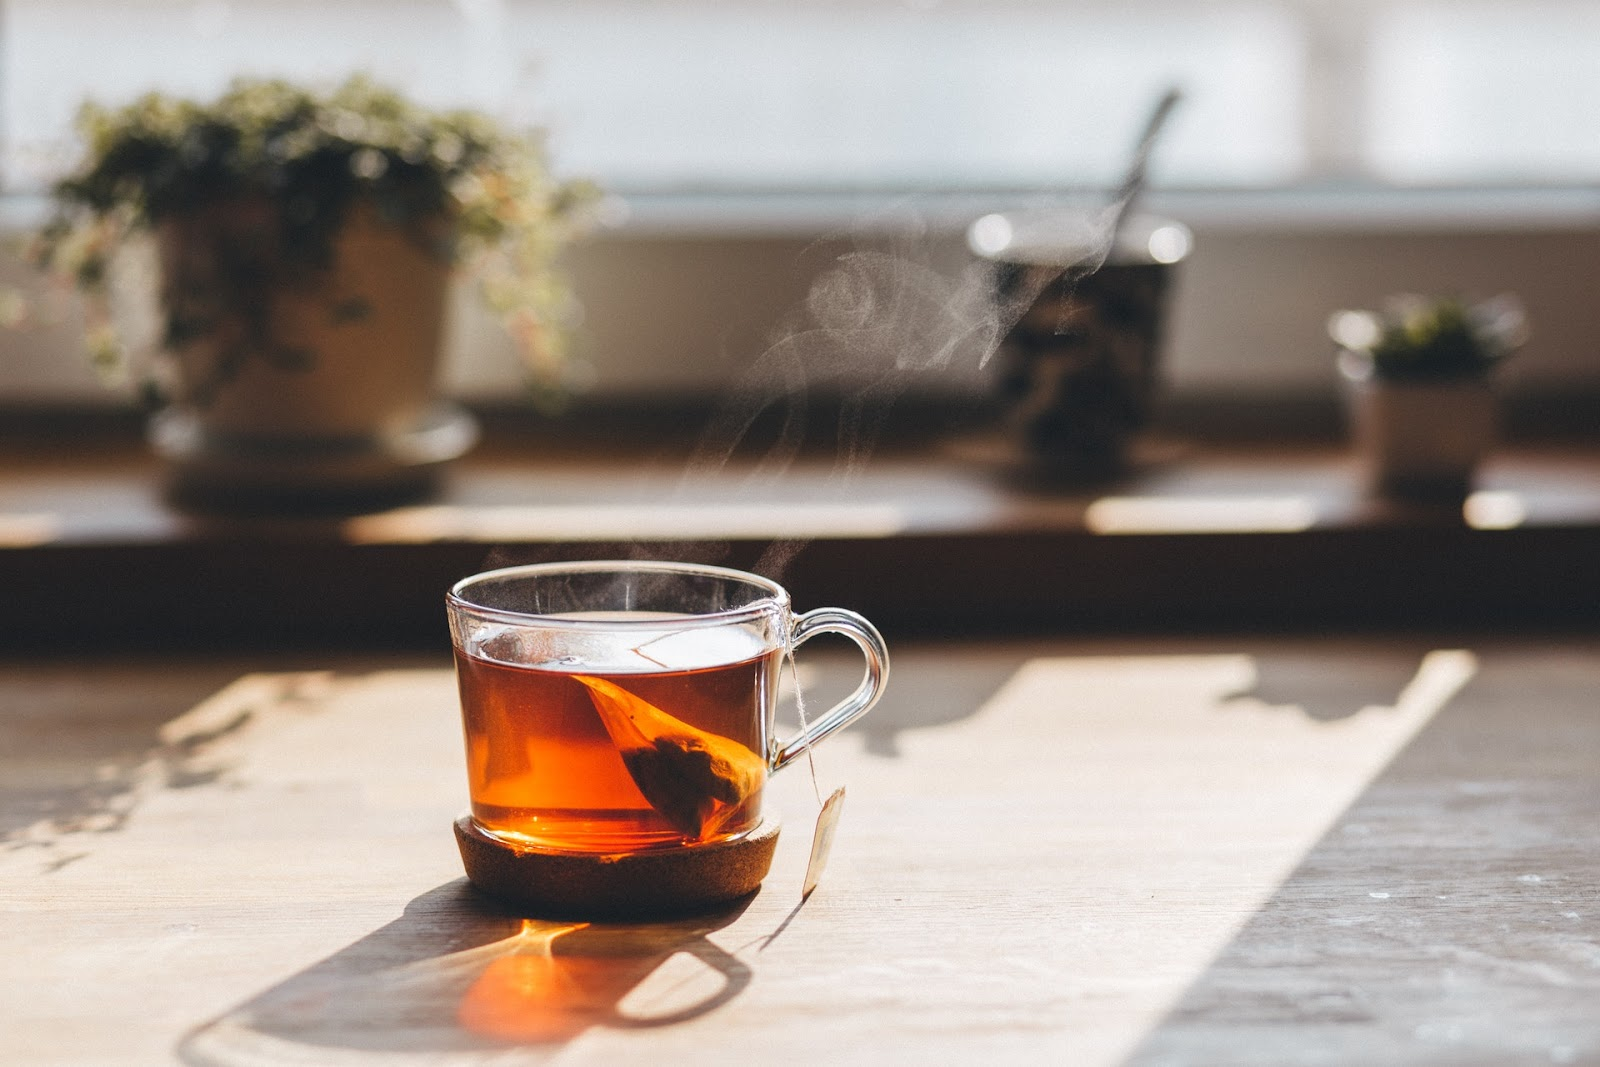 A glass cup with tea and a teabag in on a window sill.